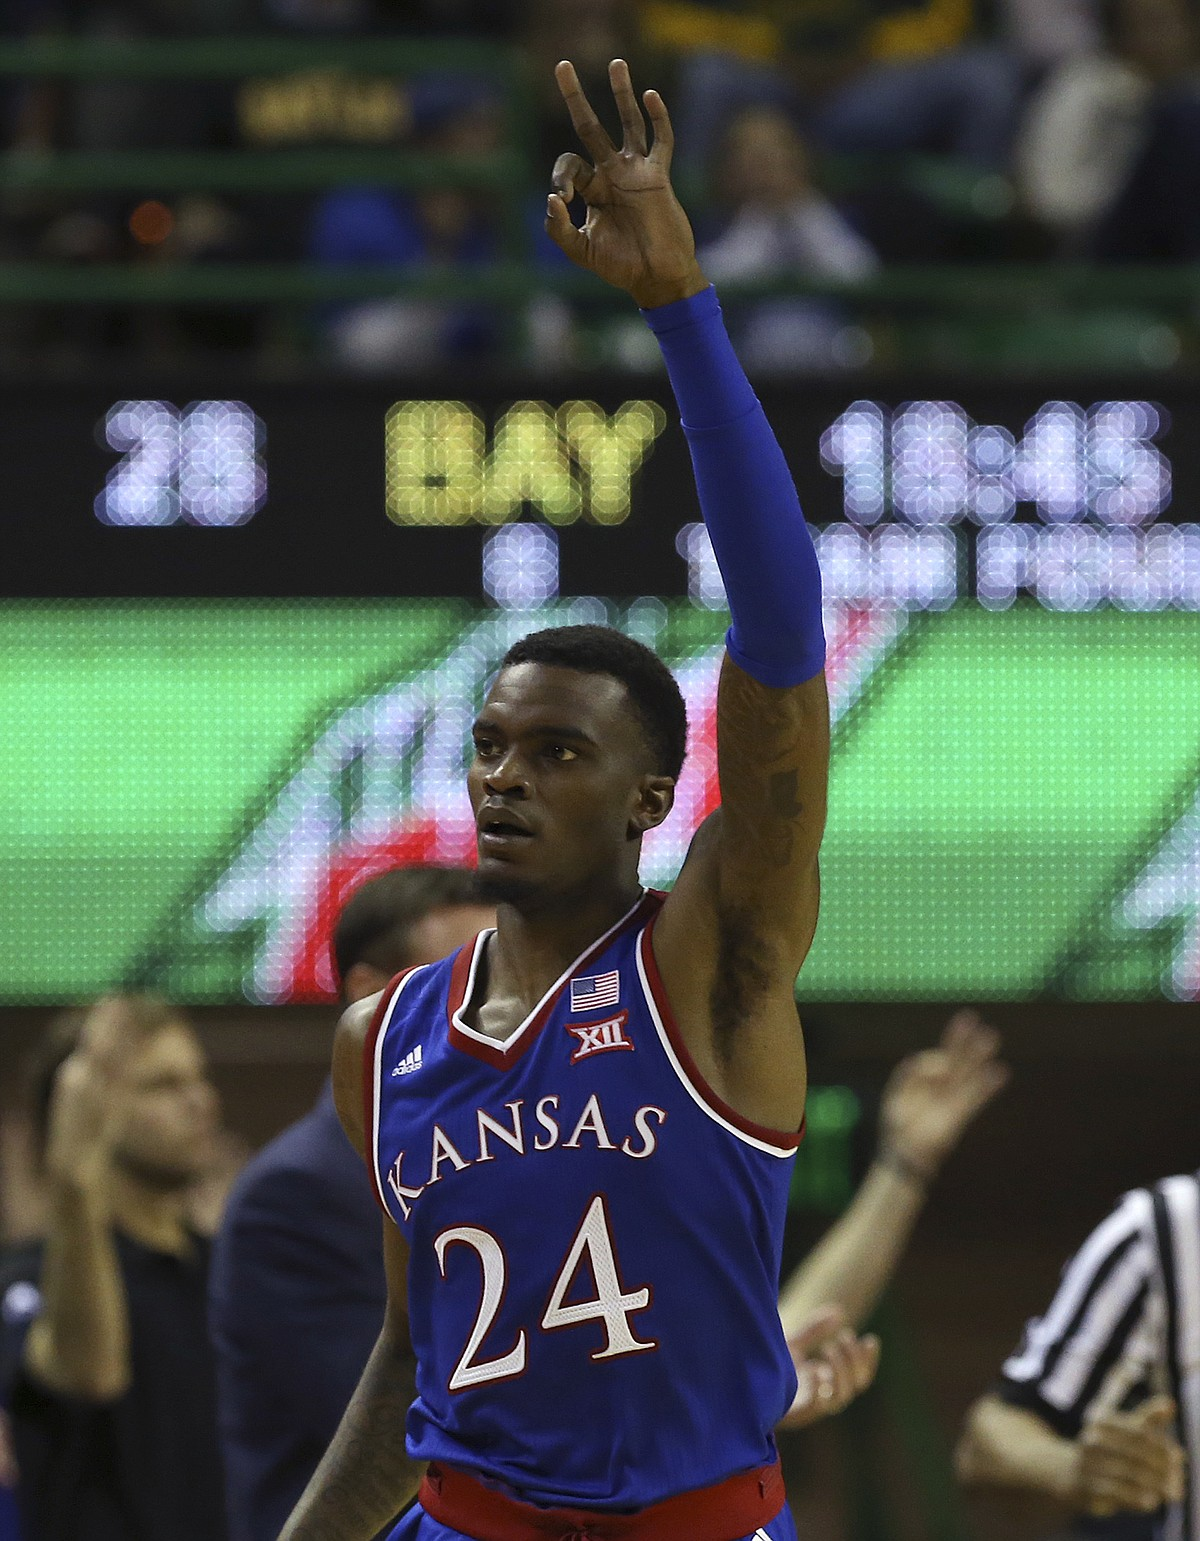 KU coach Bill Self says senior Lagerald Vick will not return for Saturday's finale vs. Baylor